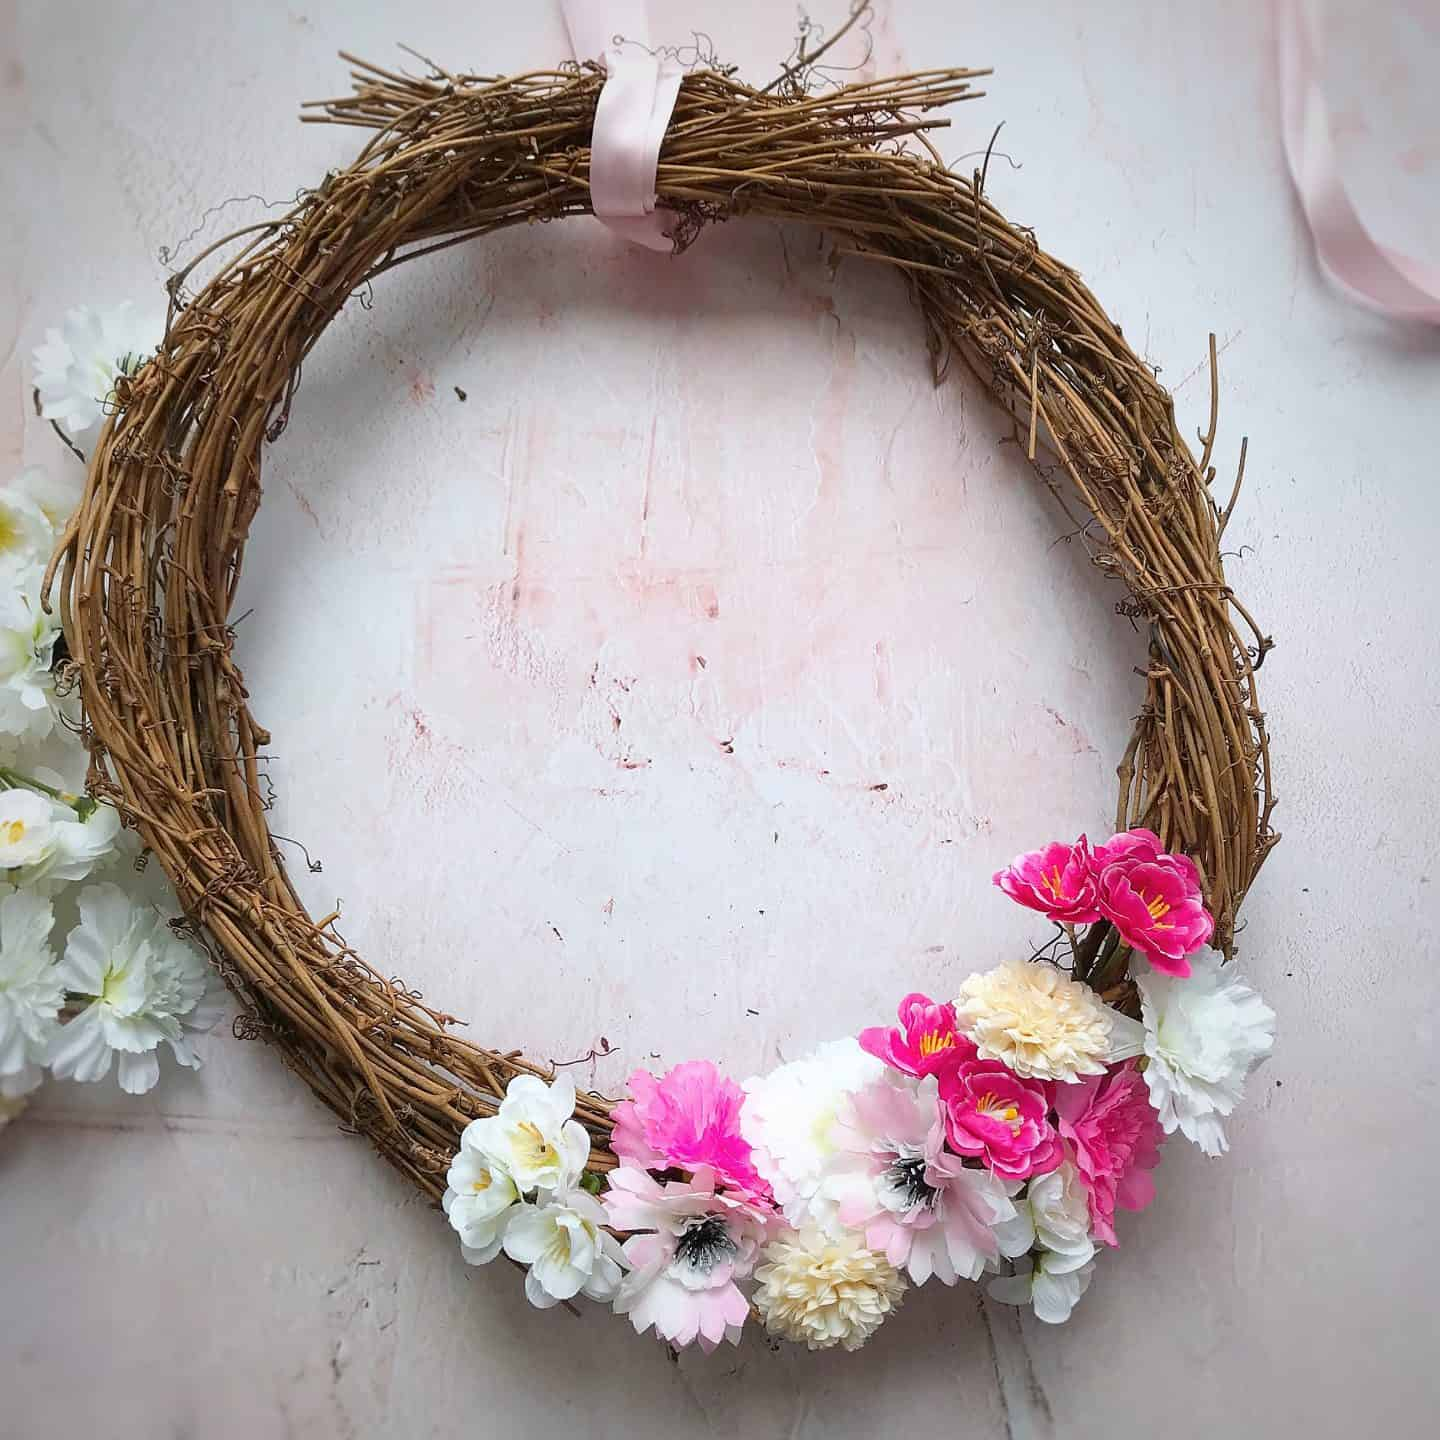 How to make an easy spring wreath in minutes using fake flowers